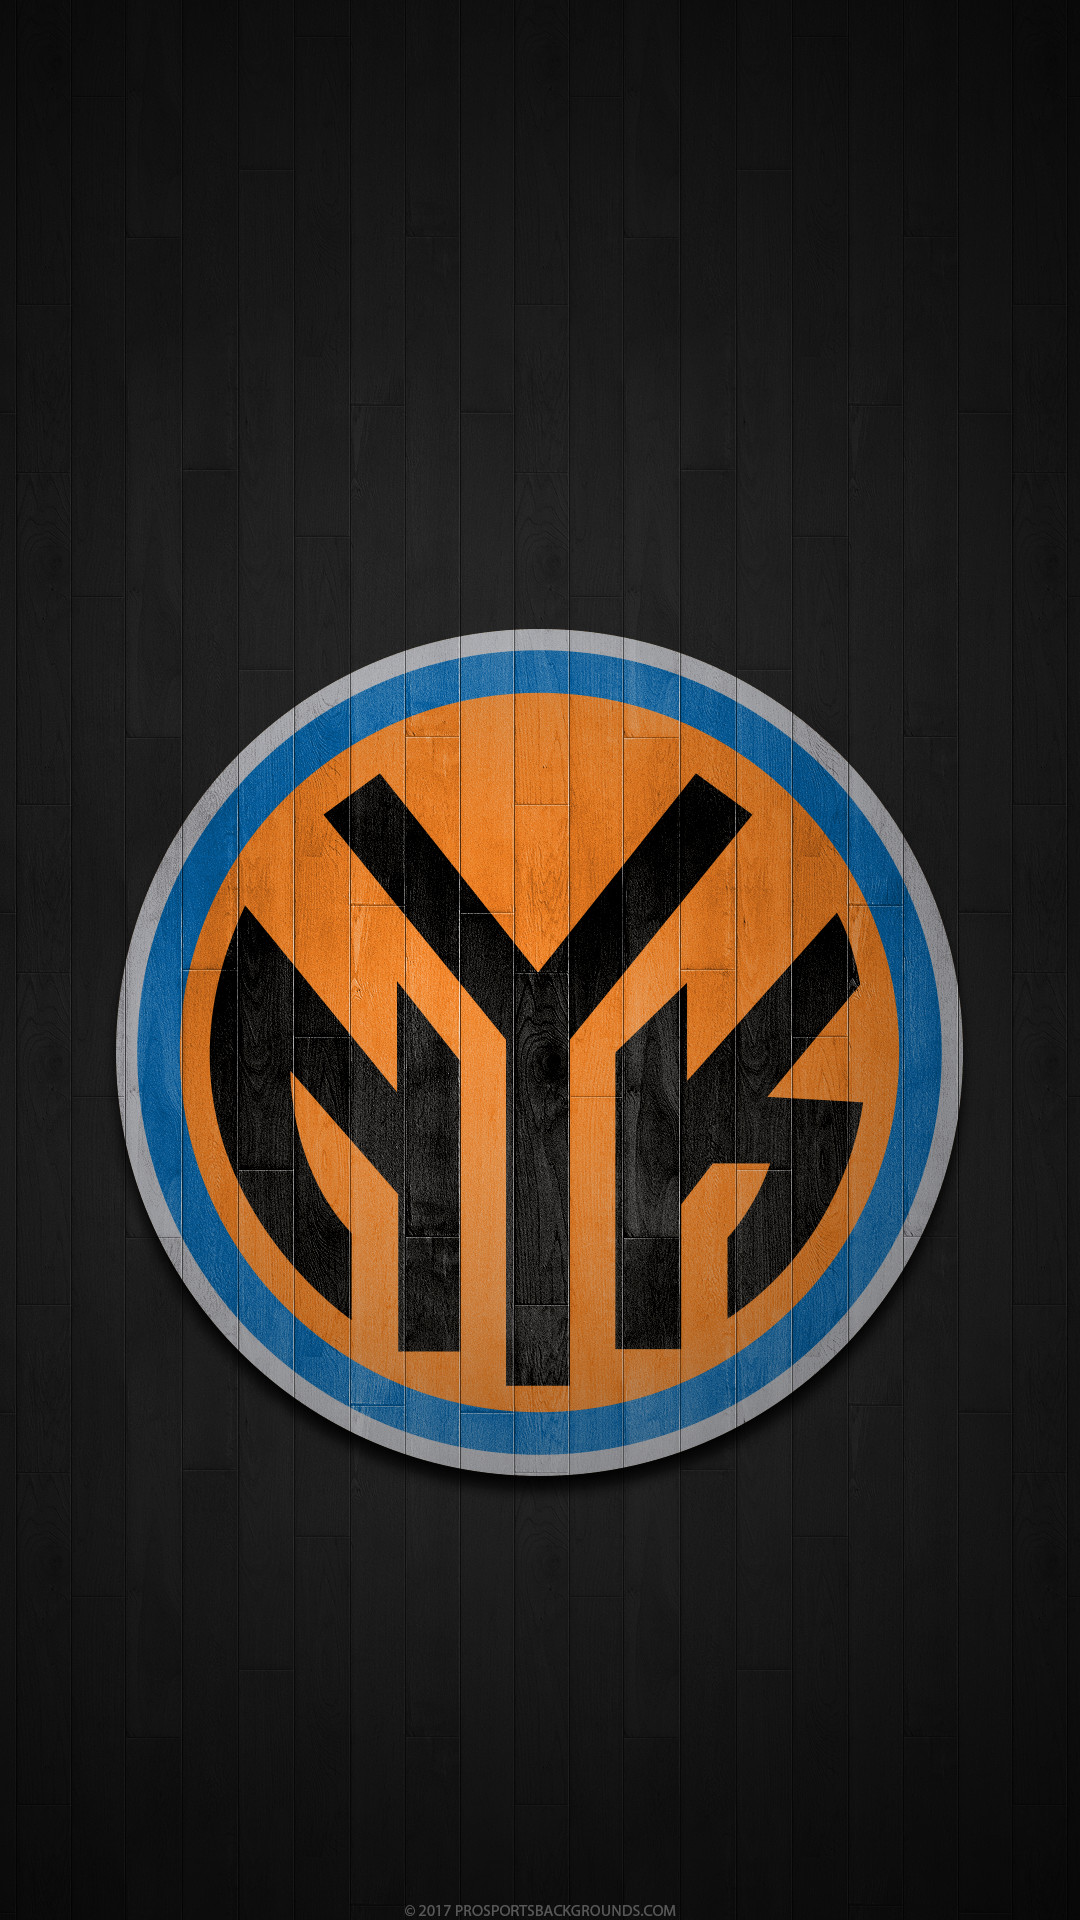 1080x1920 ... New York Knicks 2017 nba basketball hardwood team logo wallpaper for  iphone andriod and windows mobile